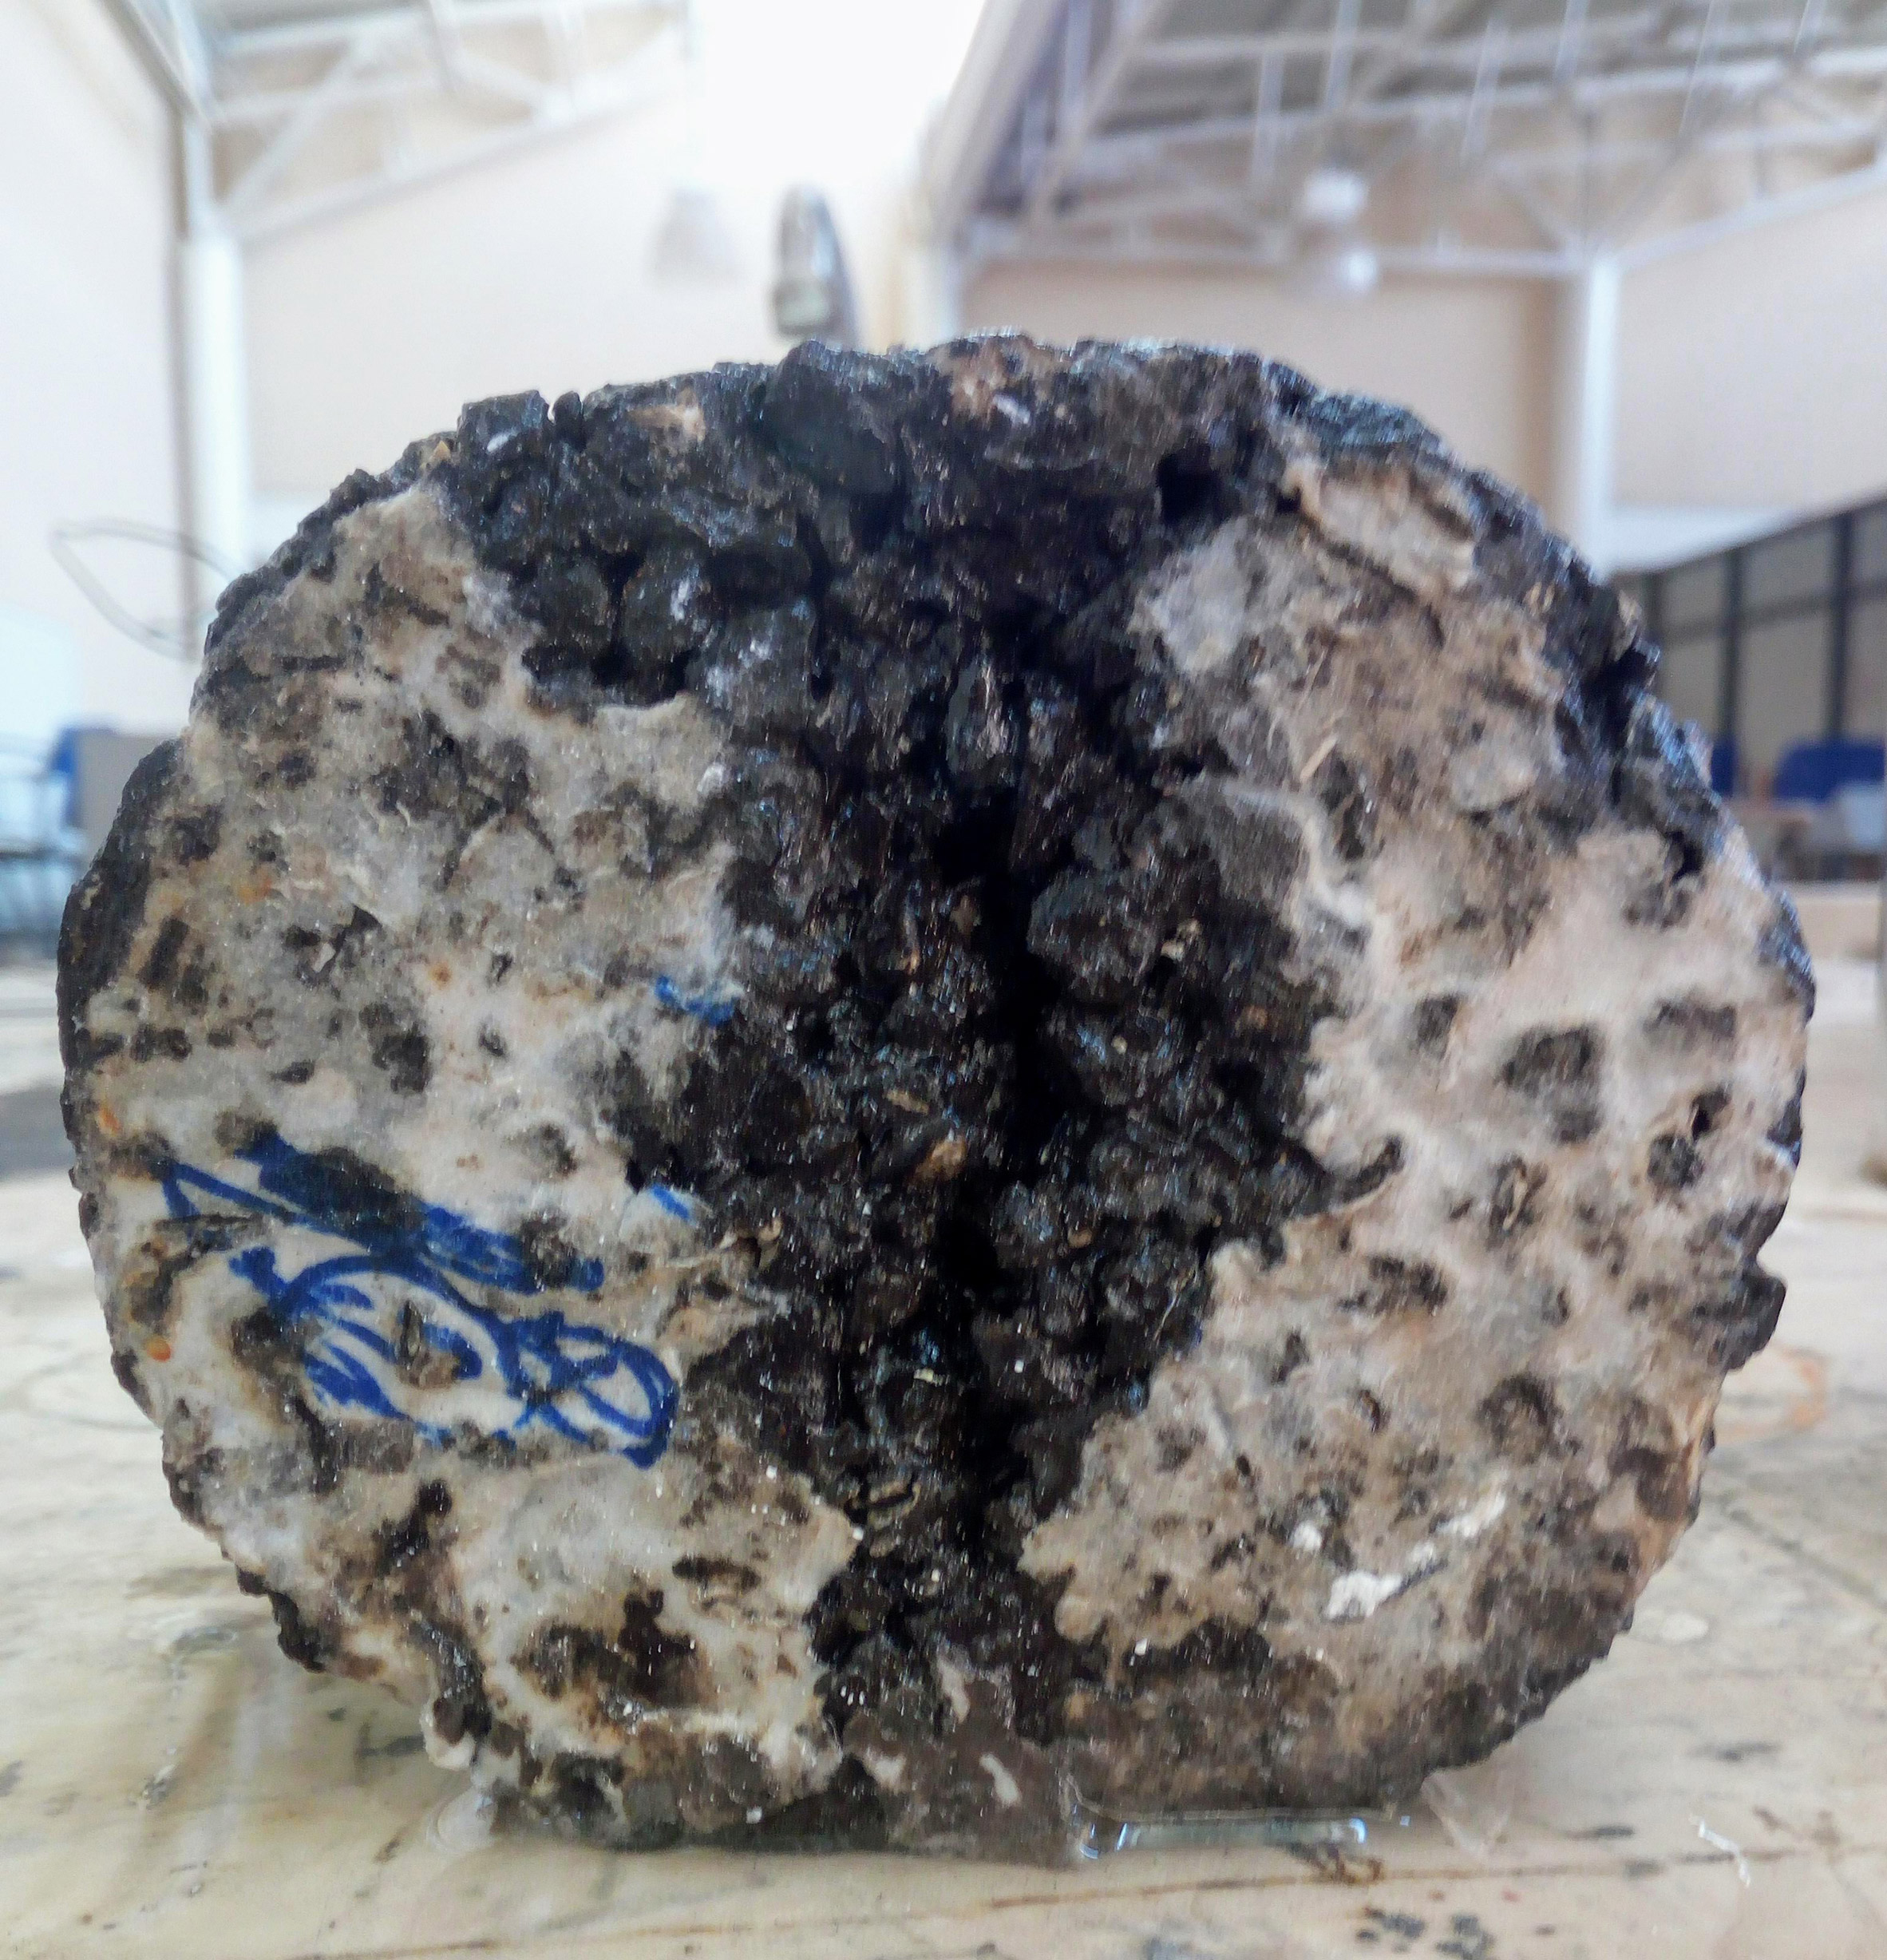 Recycled Tires Used for Self-repairing Roads and Pavements